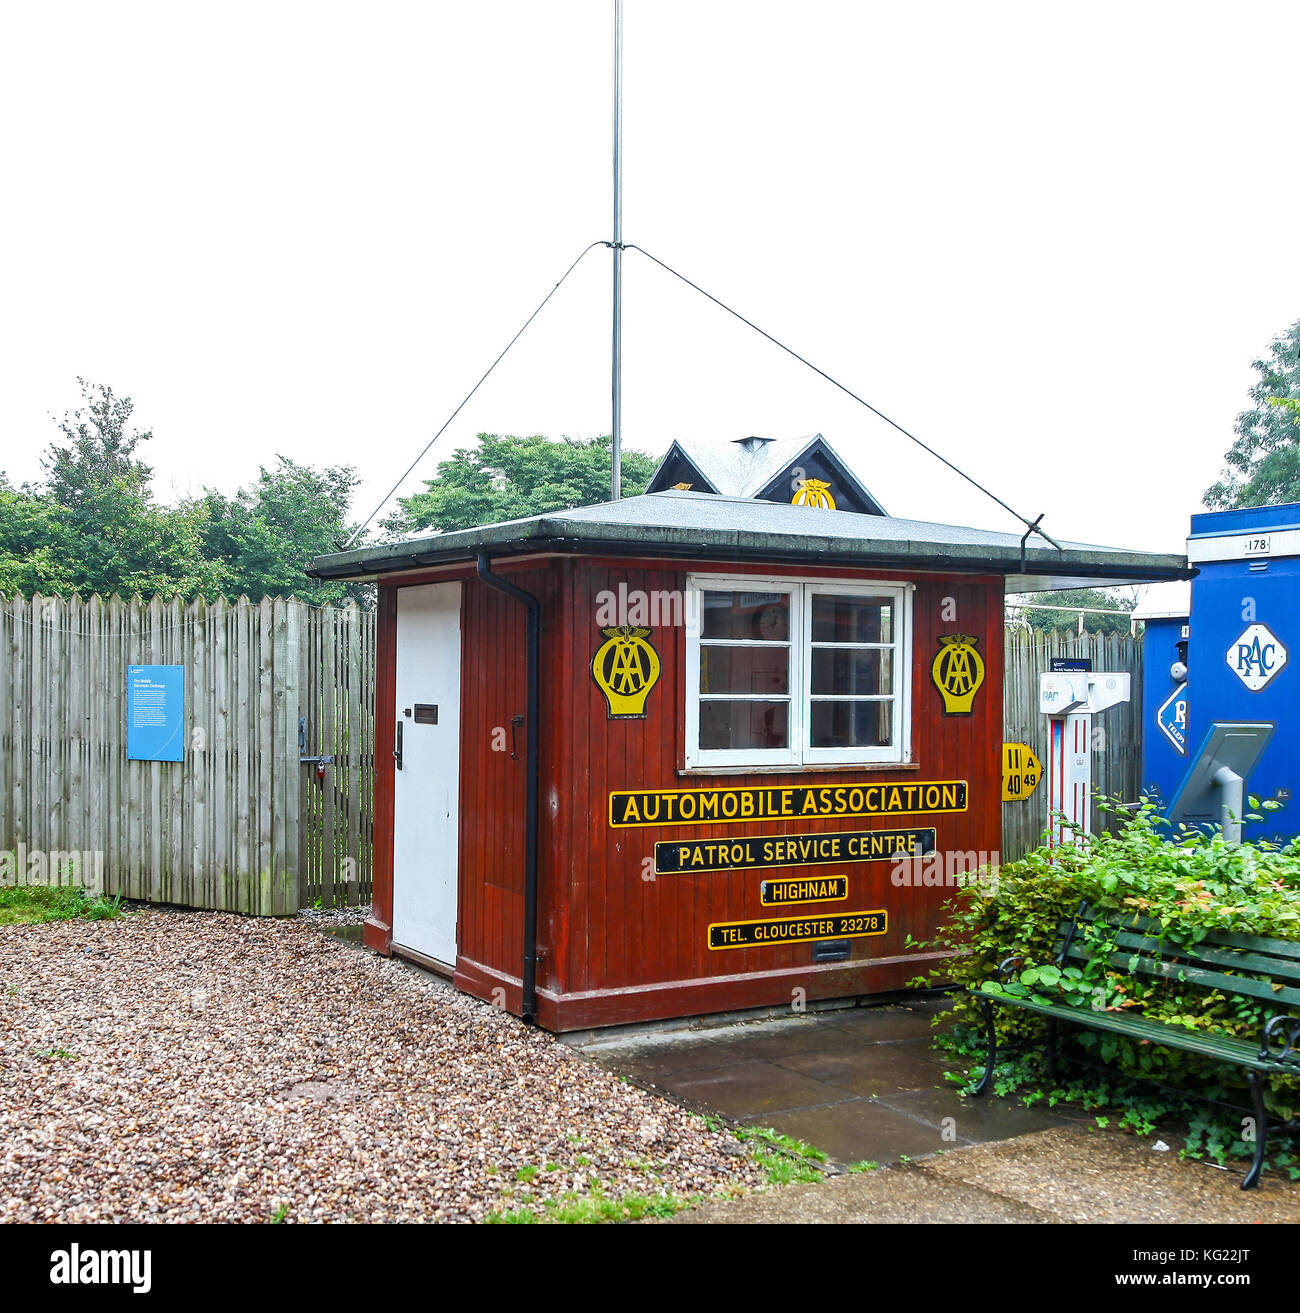 An AA Patrol Service Centre building,The National Telephone Kiosk Collection, Avoncroft Museum of Buildings, Bromsgrove, - Stock Image